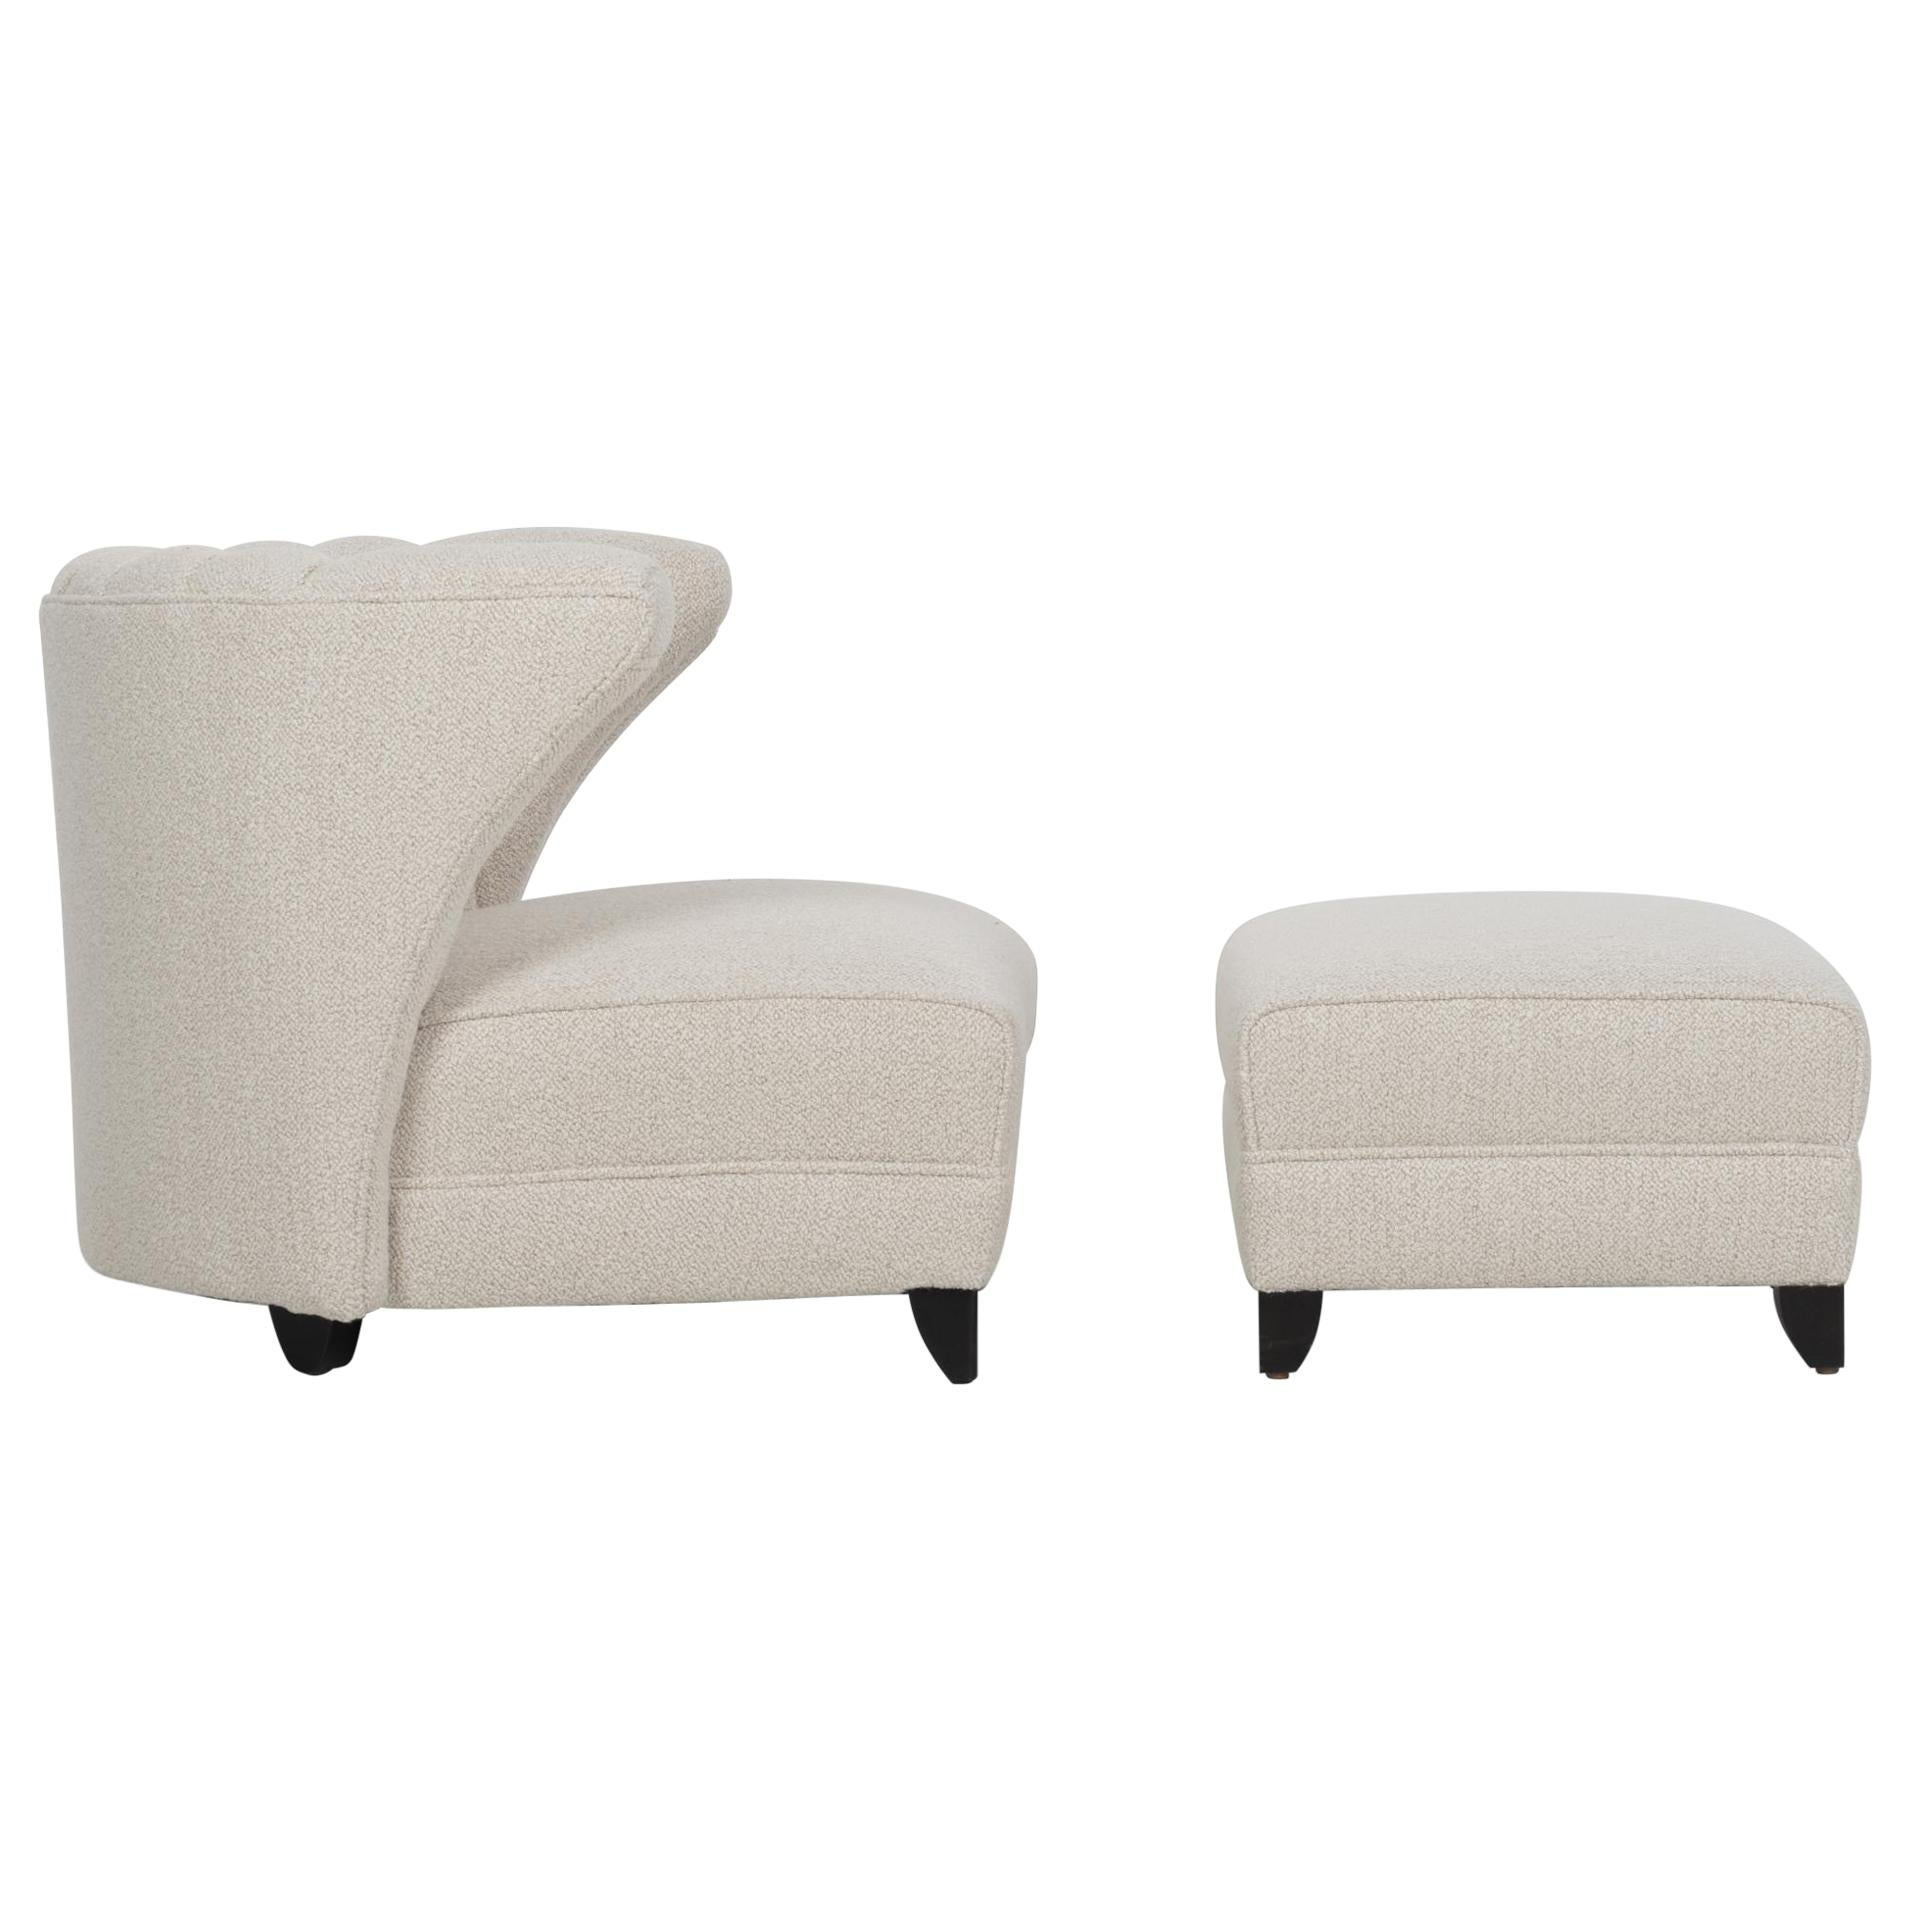 James Mont Lounge Chair and Ottoman